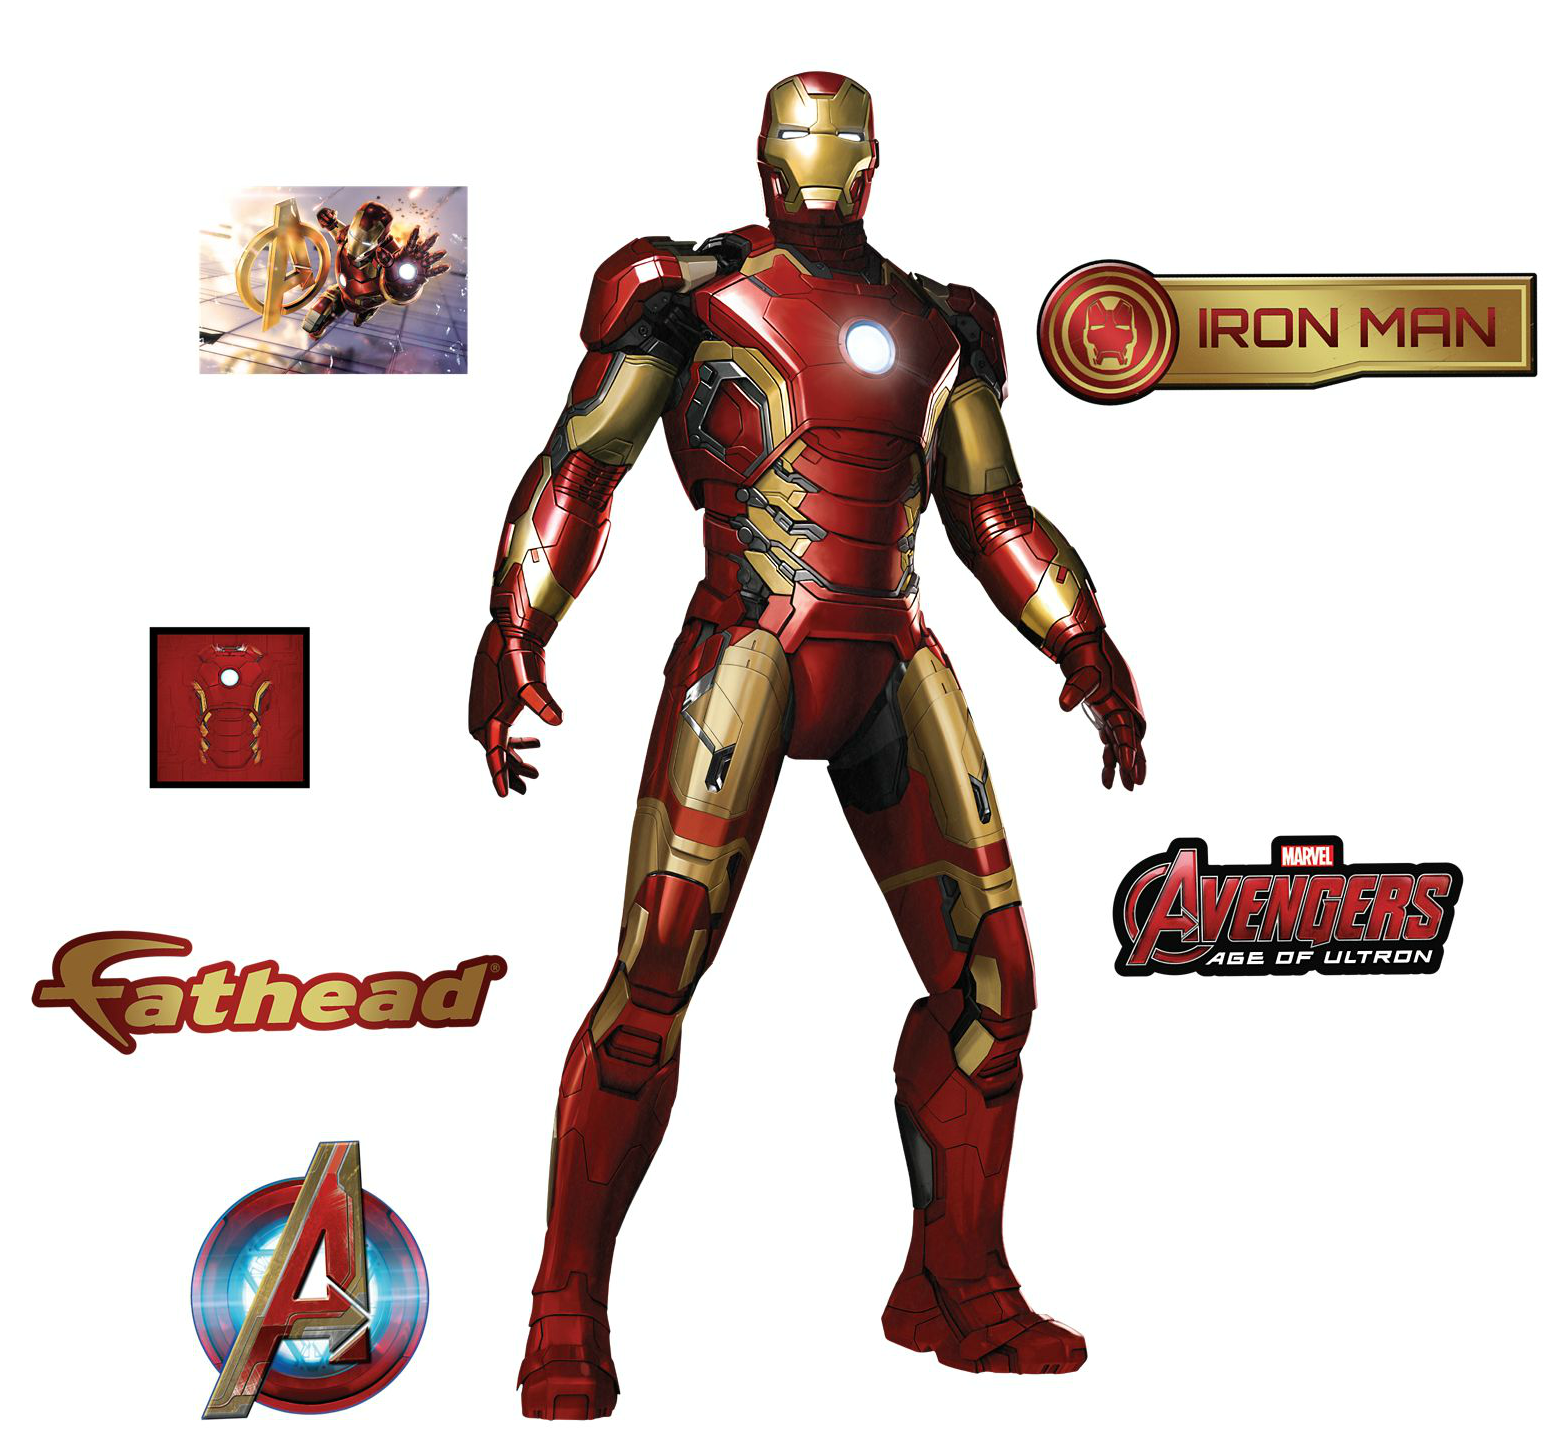 Avengers-Age-of-Ultron-Iron-Man-Fathead.png